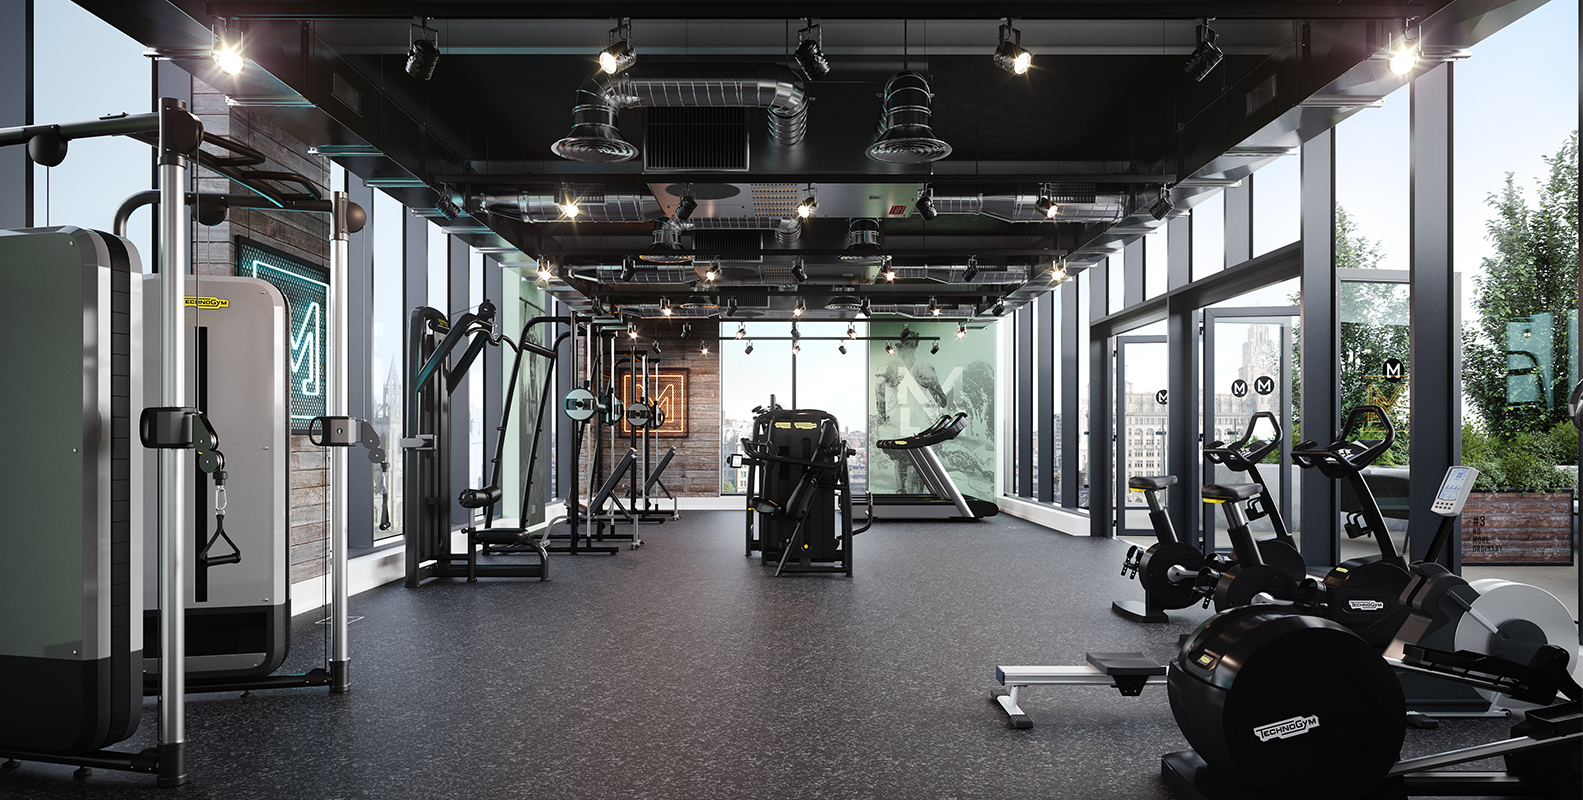 gym with Technogym equipment and neon lights